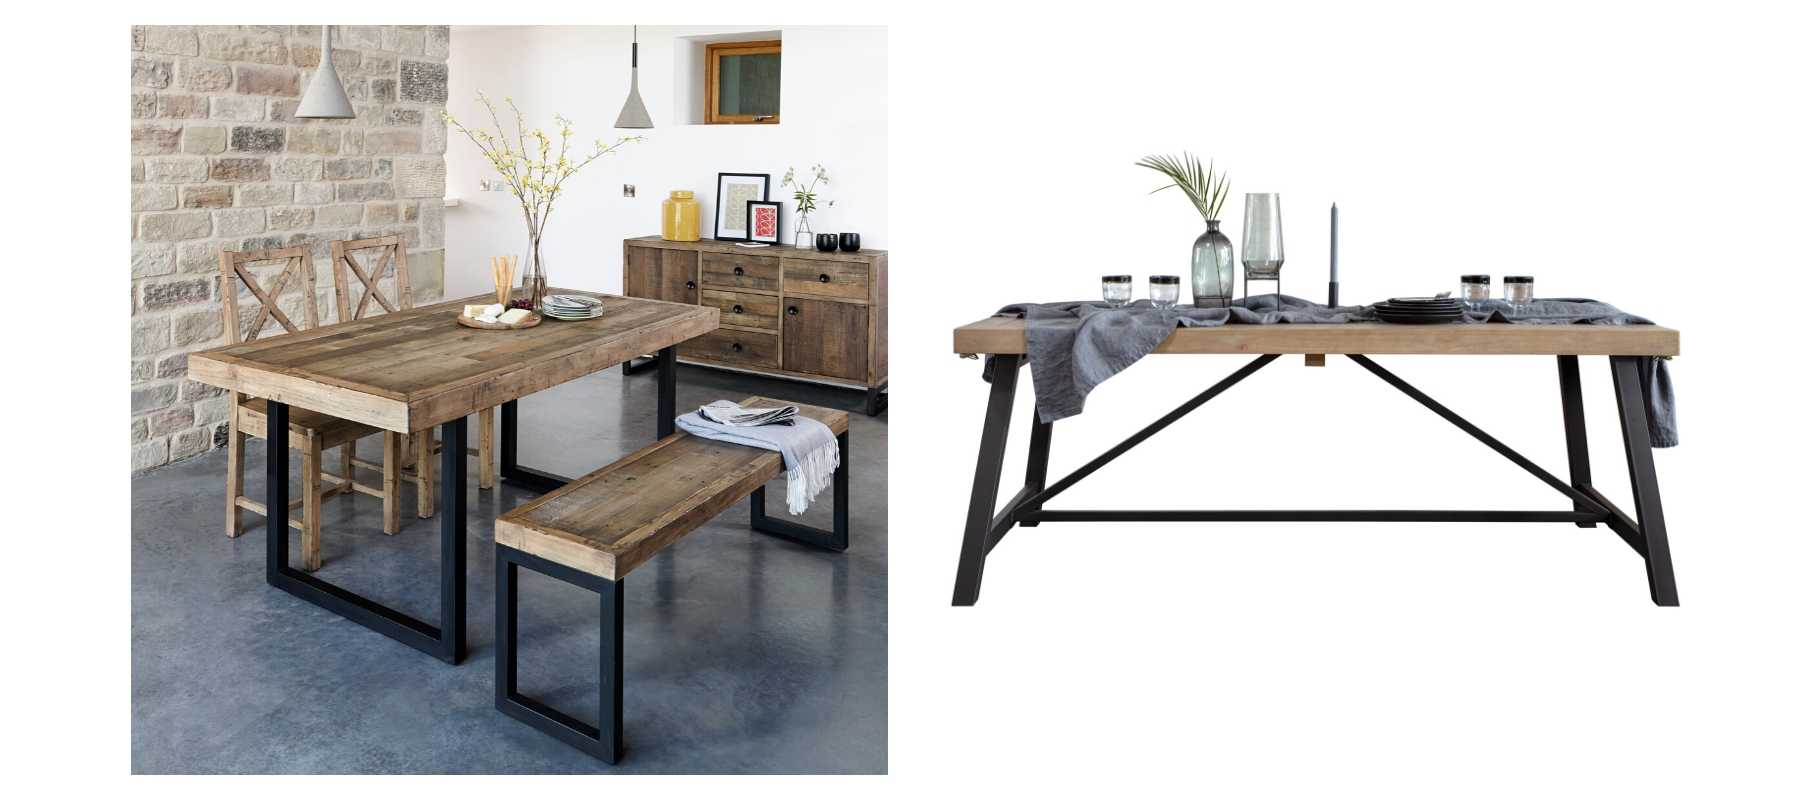 Standford Reclaimed Wood Table and Lansdowne Industrial Rustic Dining Table